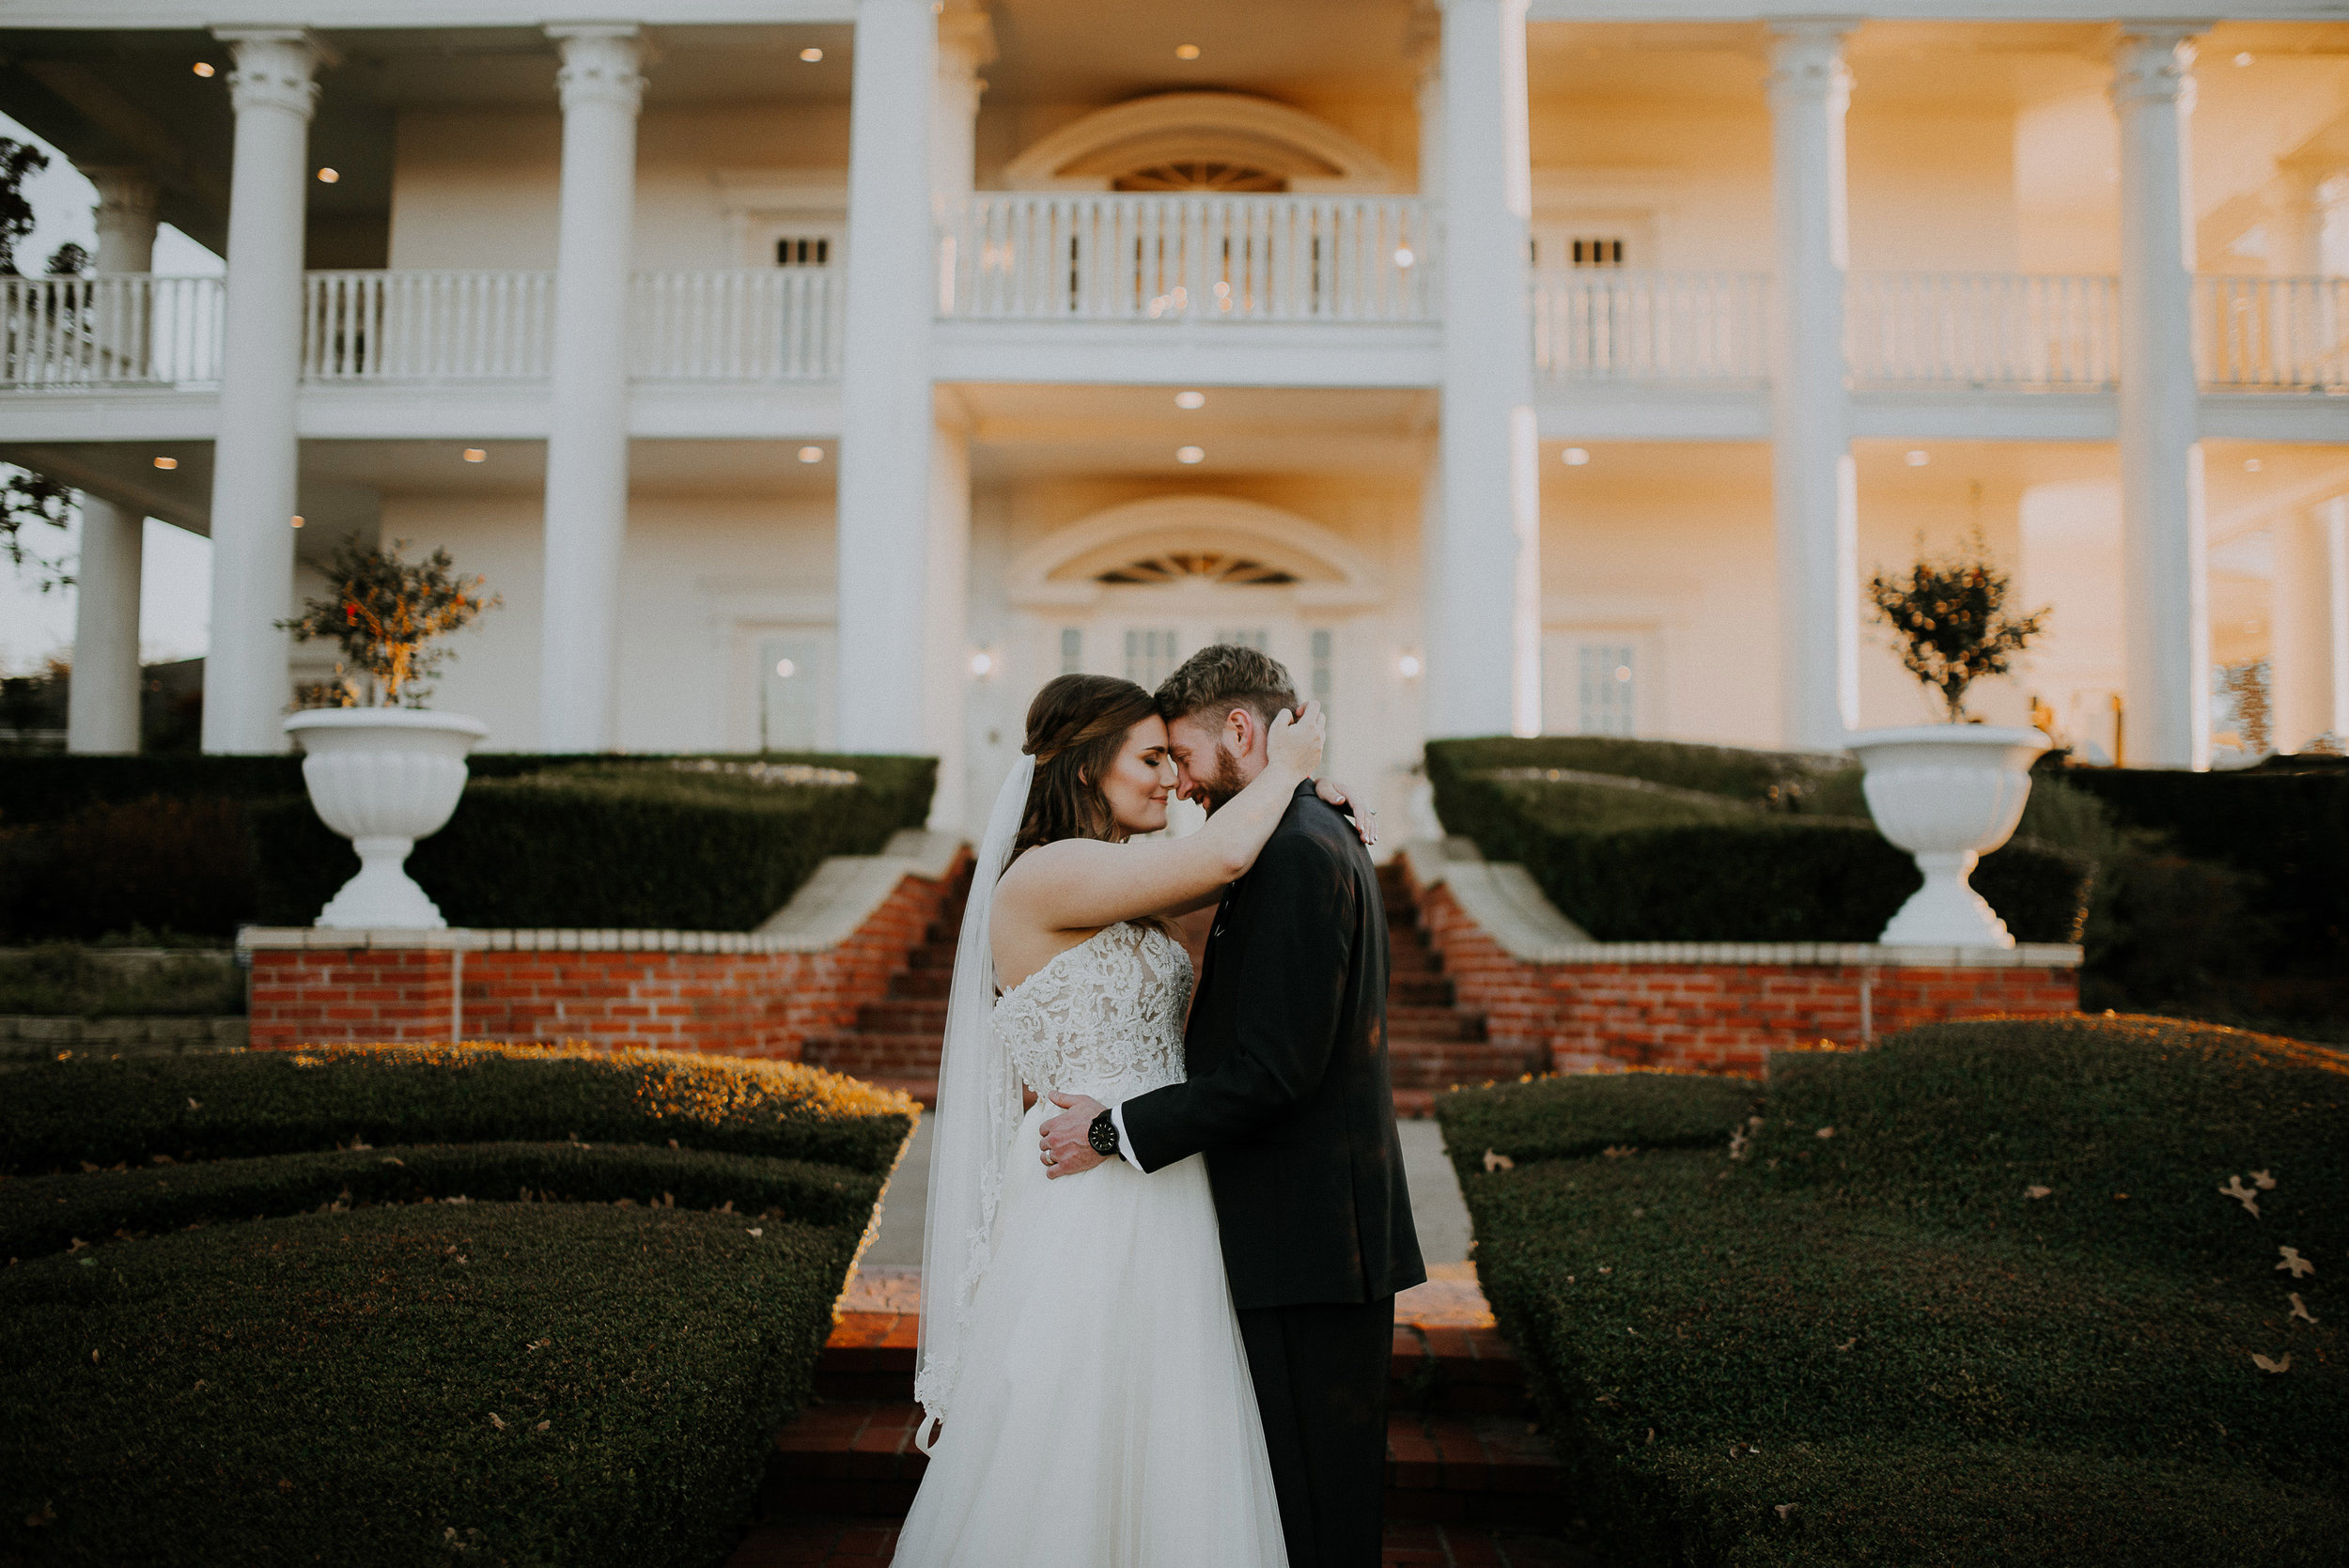 Dallas_Fort_Worth_wedding_Photographer_lone_star_mansion_burleson_texas_105